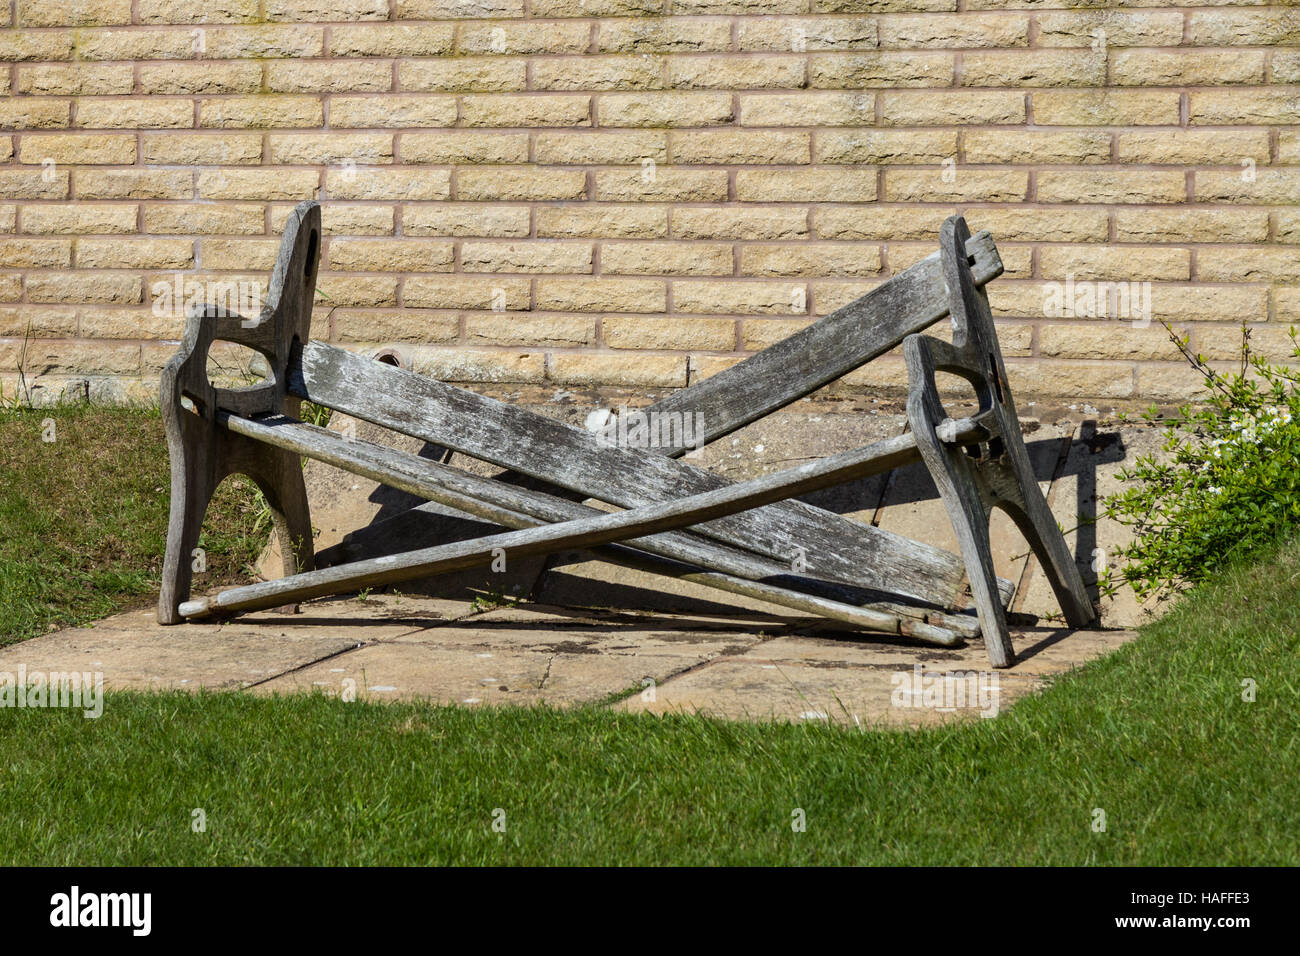 https://c8.alamy.com/comp/HAFFE3/broken-bench-makes-interesting-shape-HAFFE3.jpg